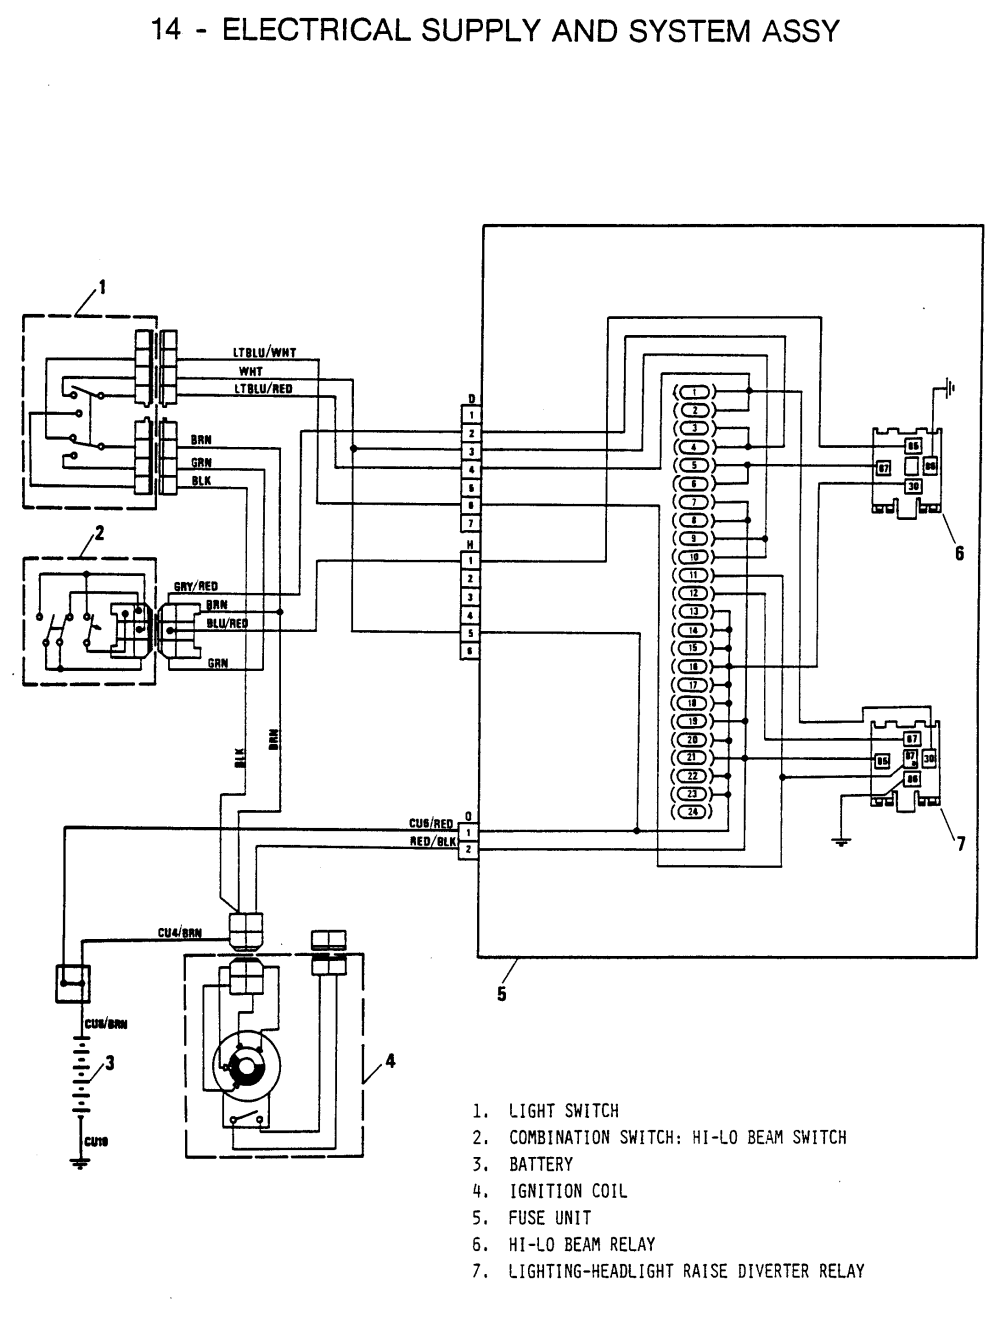 medium resolution of 1990 fiat x1 9 supply fuse box diagram 9 11 castlefans de u20221992 fiat x19